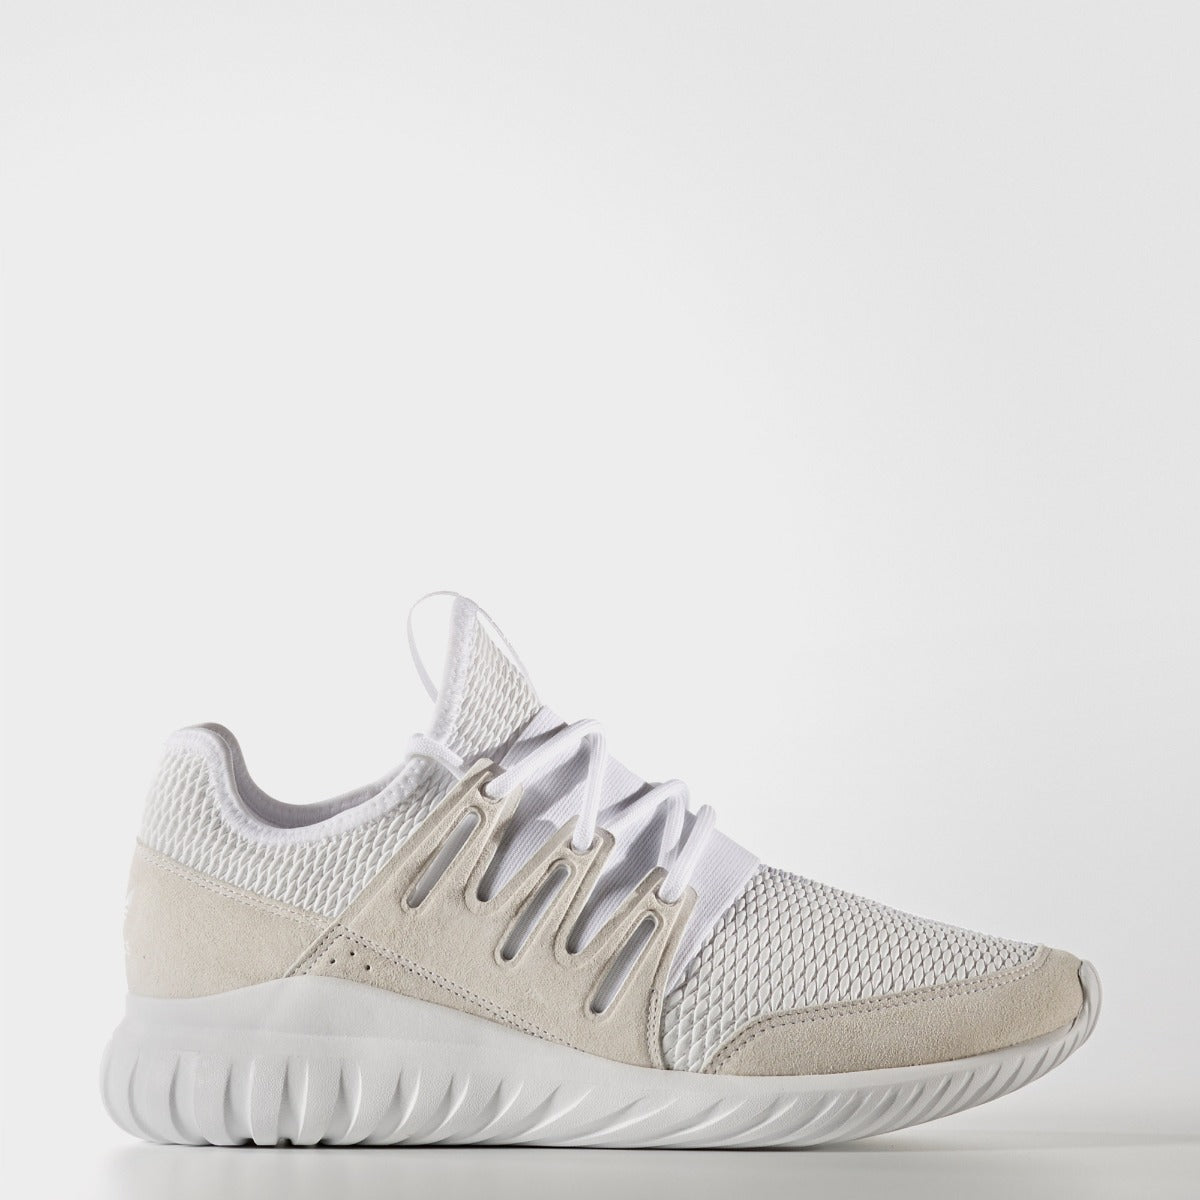 size 40 41bc0 99b1c Men s Adidas Originals Tubular Radial Light Gray